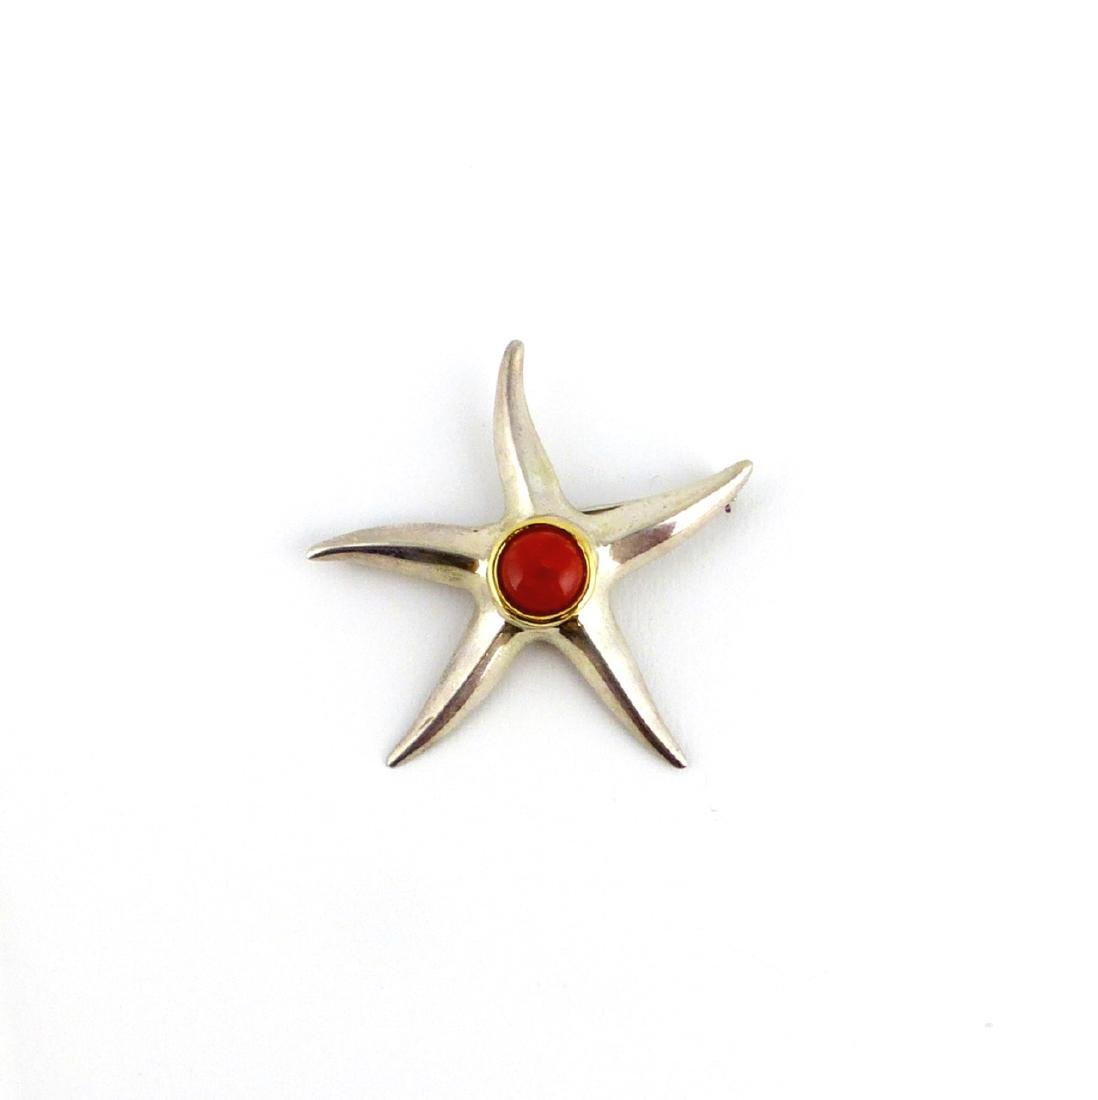 TIFFANY STERLING & 18kt YG CORAL STARFISH BROOCH